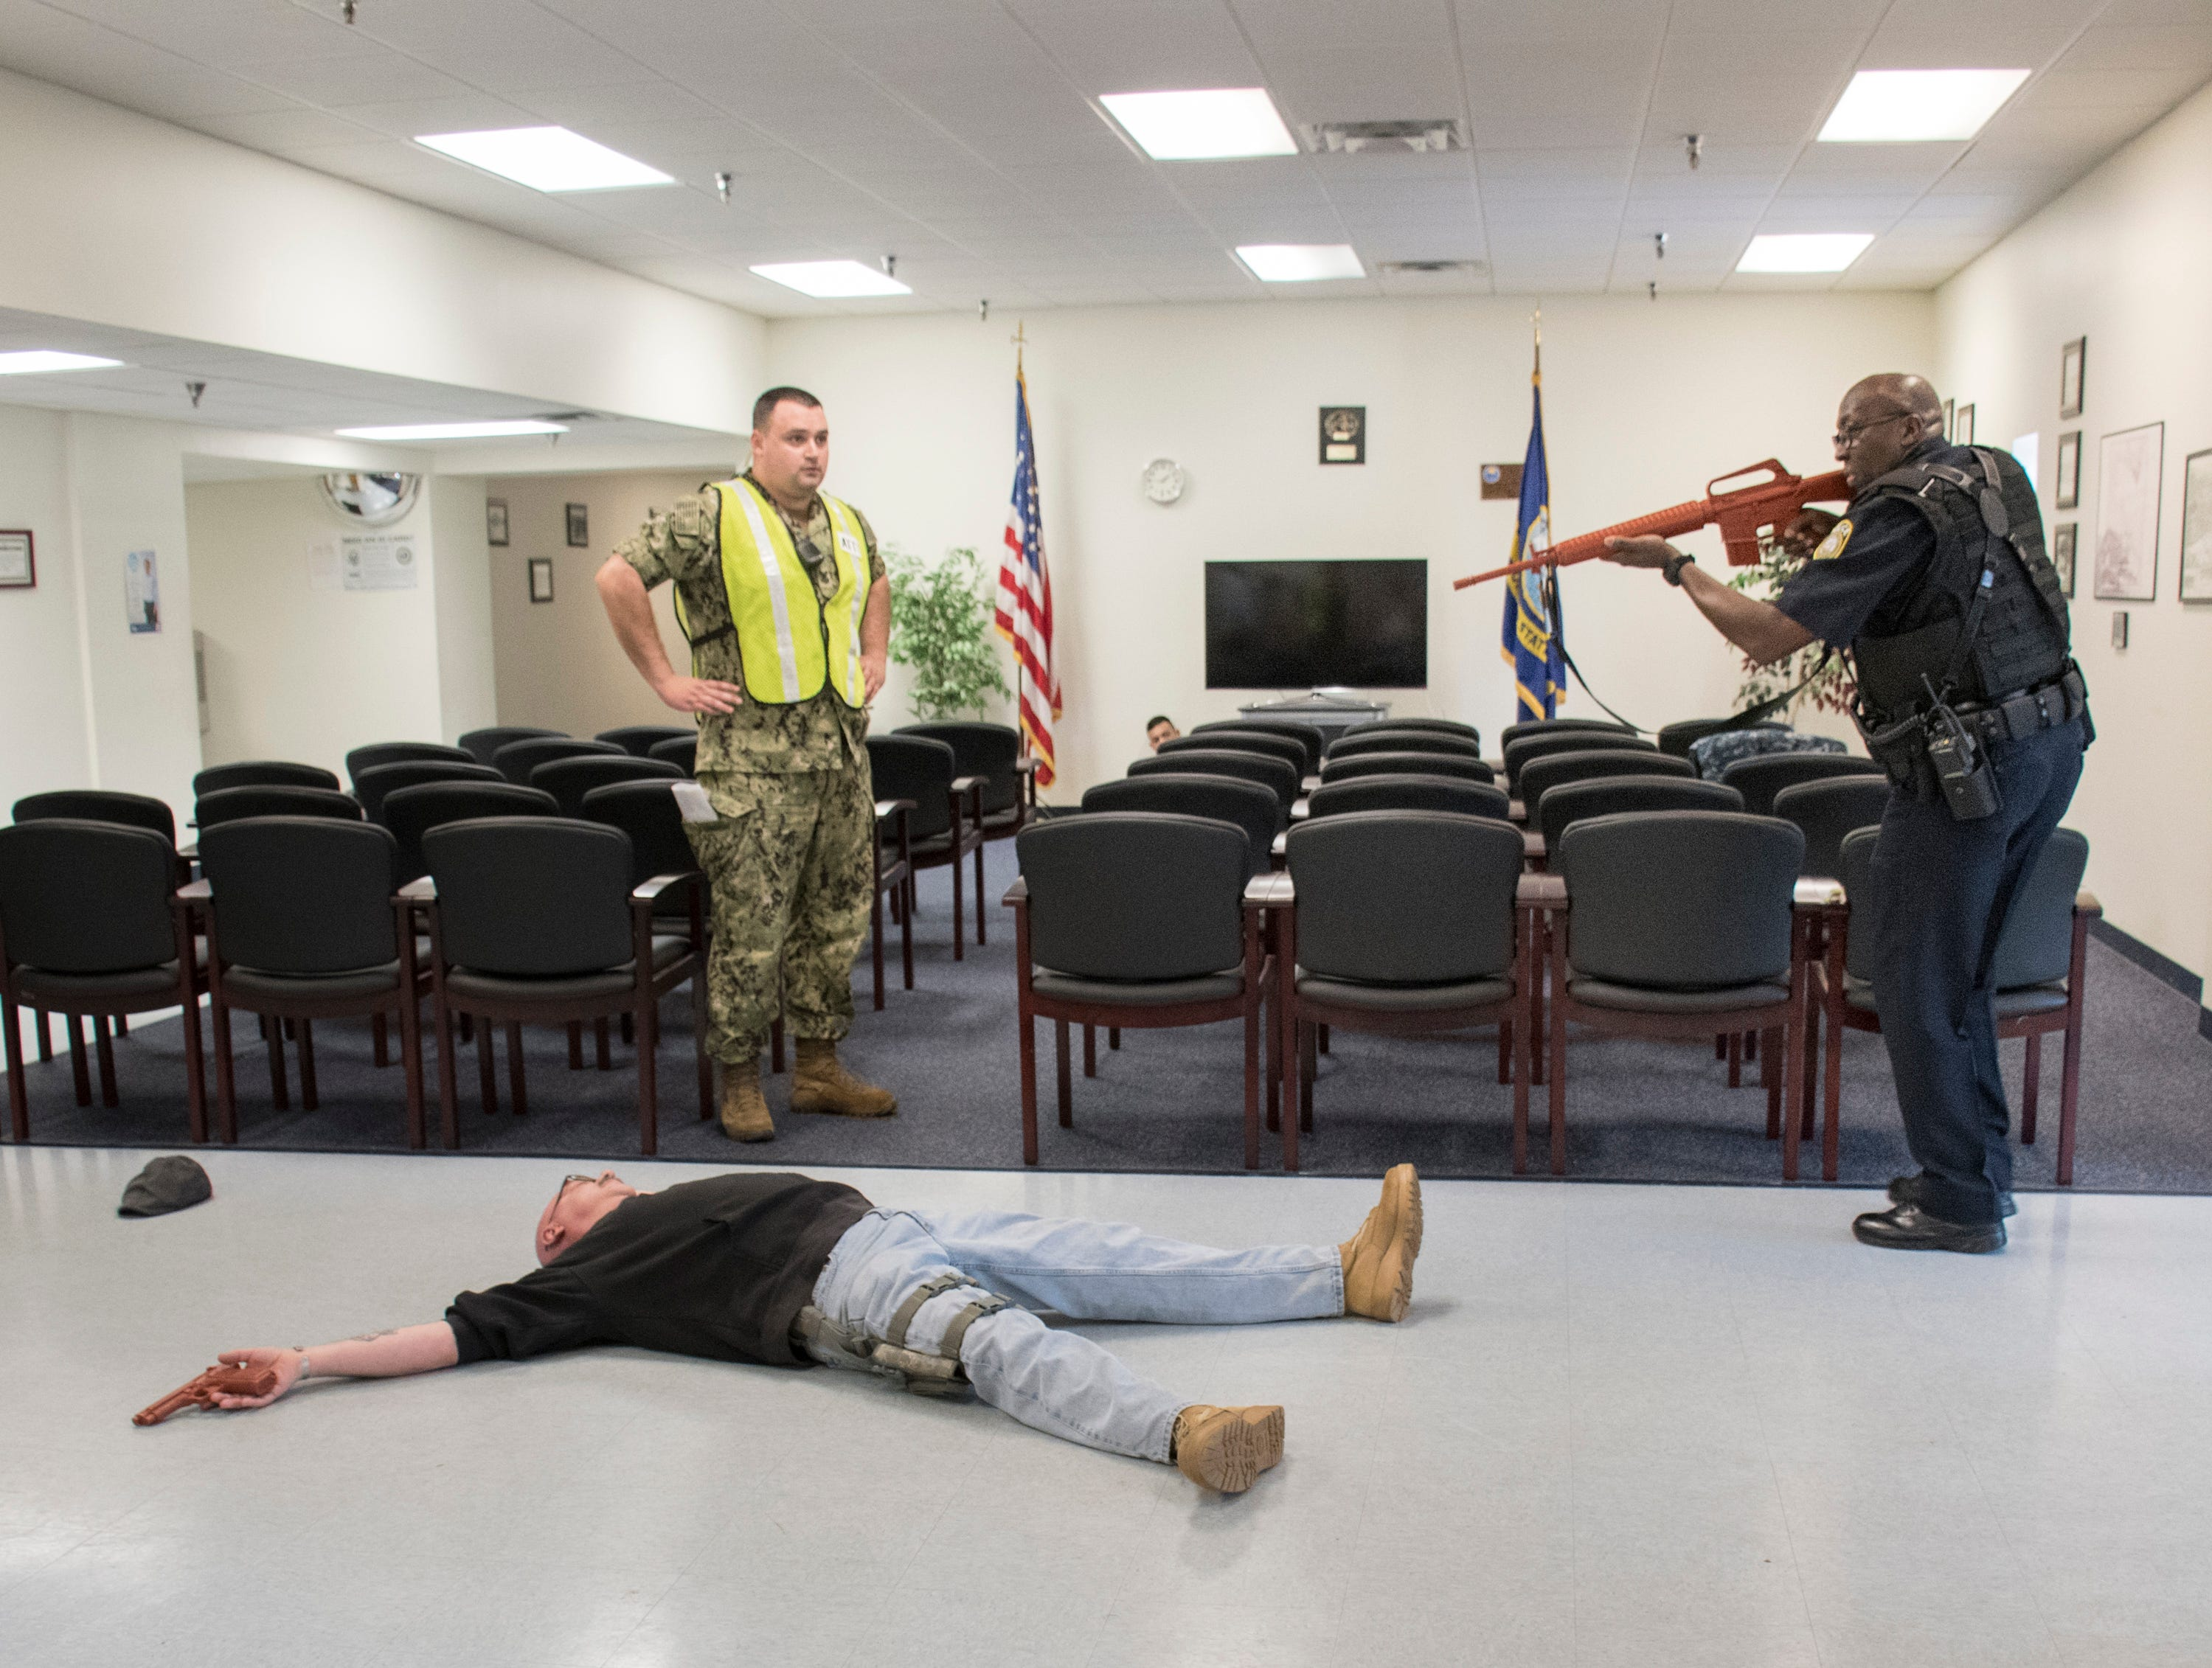 Portraying an armed intruder,  Senior Chief Aviation Structural Mechanic Pasquale Moreland lays on the ground after being shot as NAS Pensacola Police Officer Samuel Watkins enters the Personnel Support Detachment building during Exercise Solid Curtain-Citadel Shield, an annual security exercise is conducted at NAS Pensacola on Tuesday, February 4, 2019.